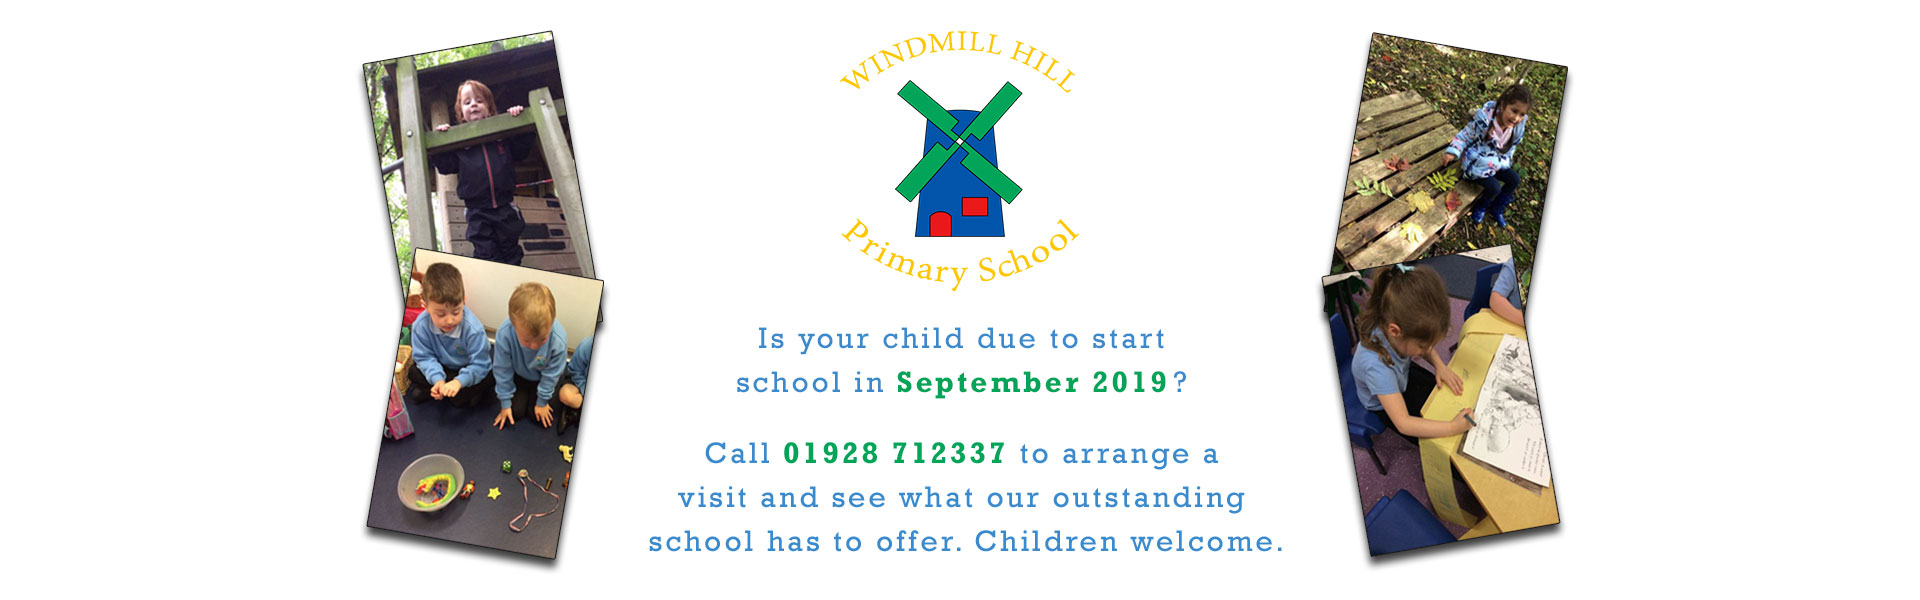 windmill-hill-school-visits-for-new-admissions-2019